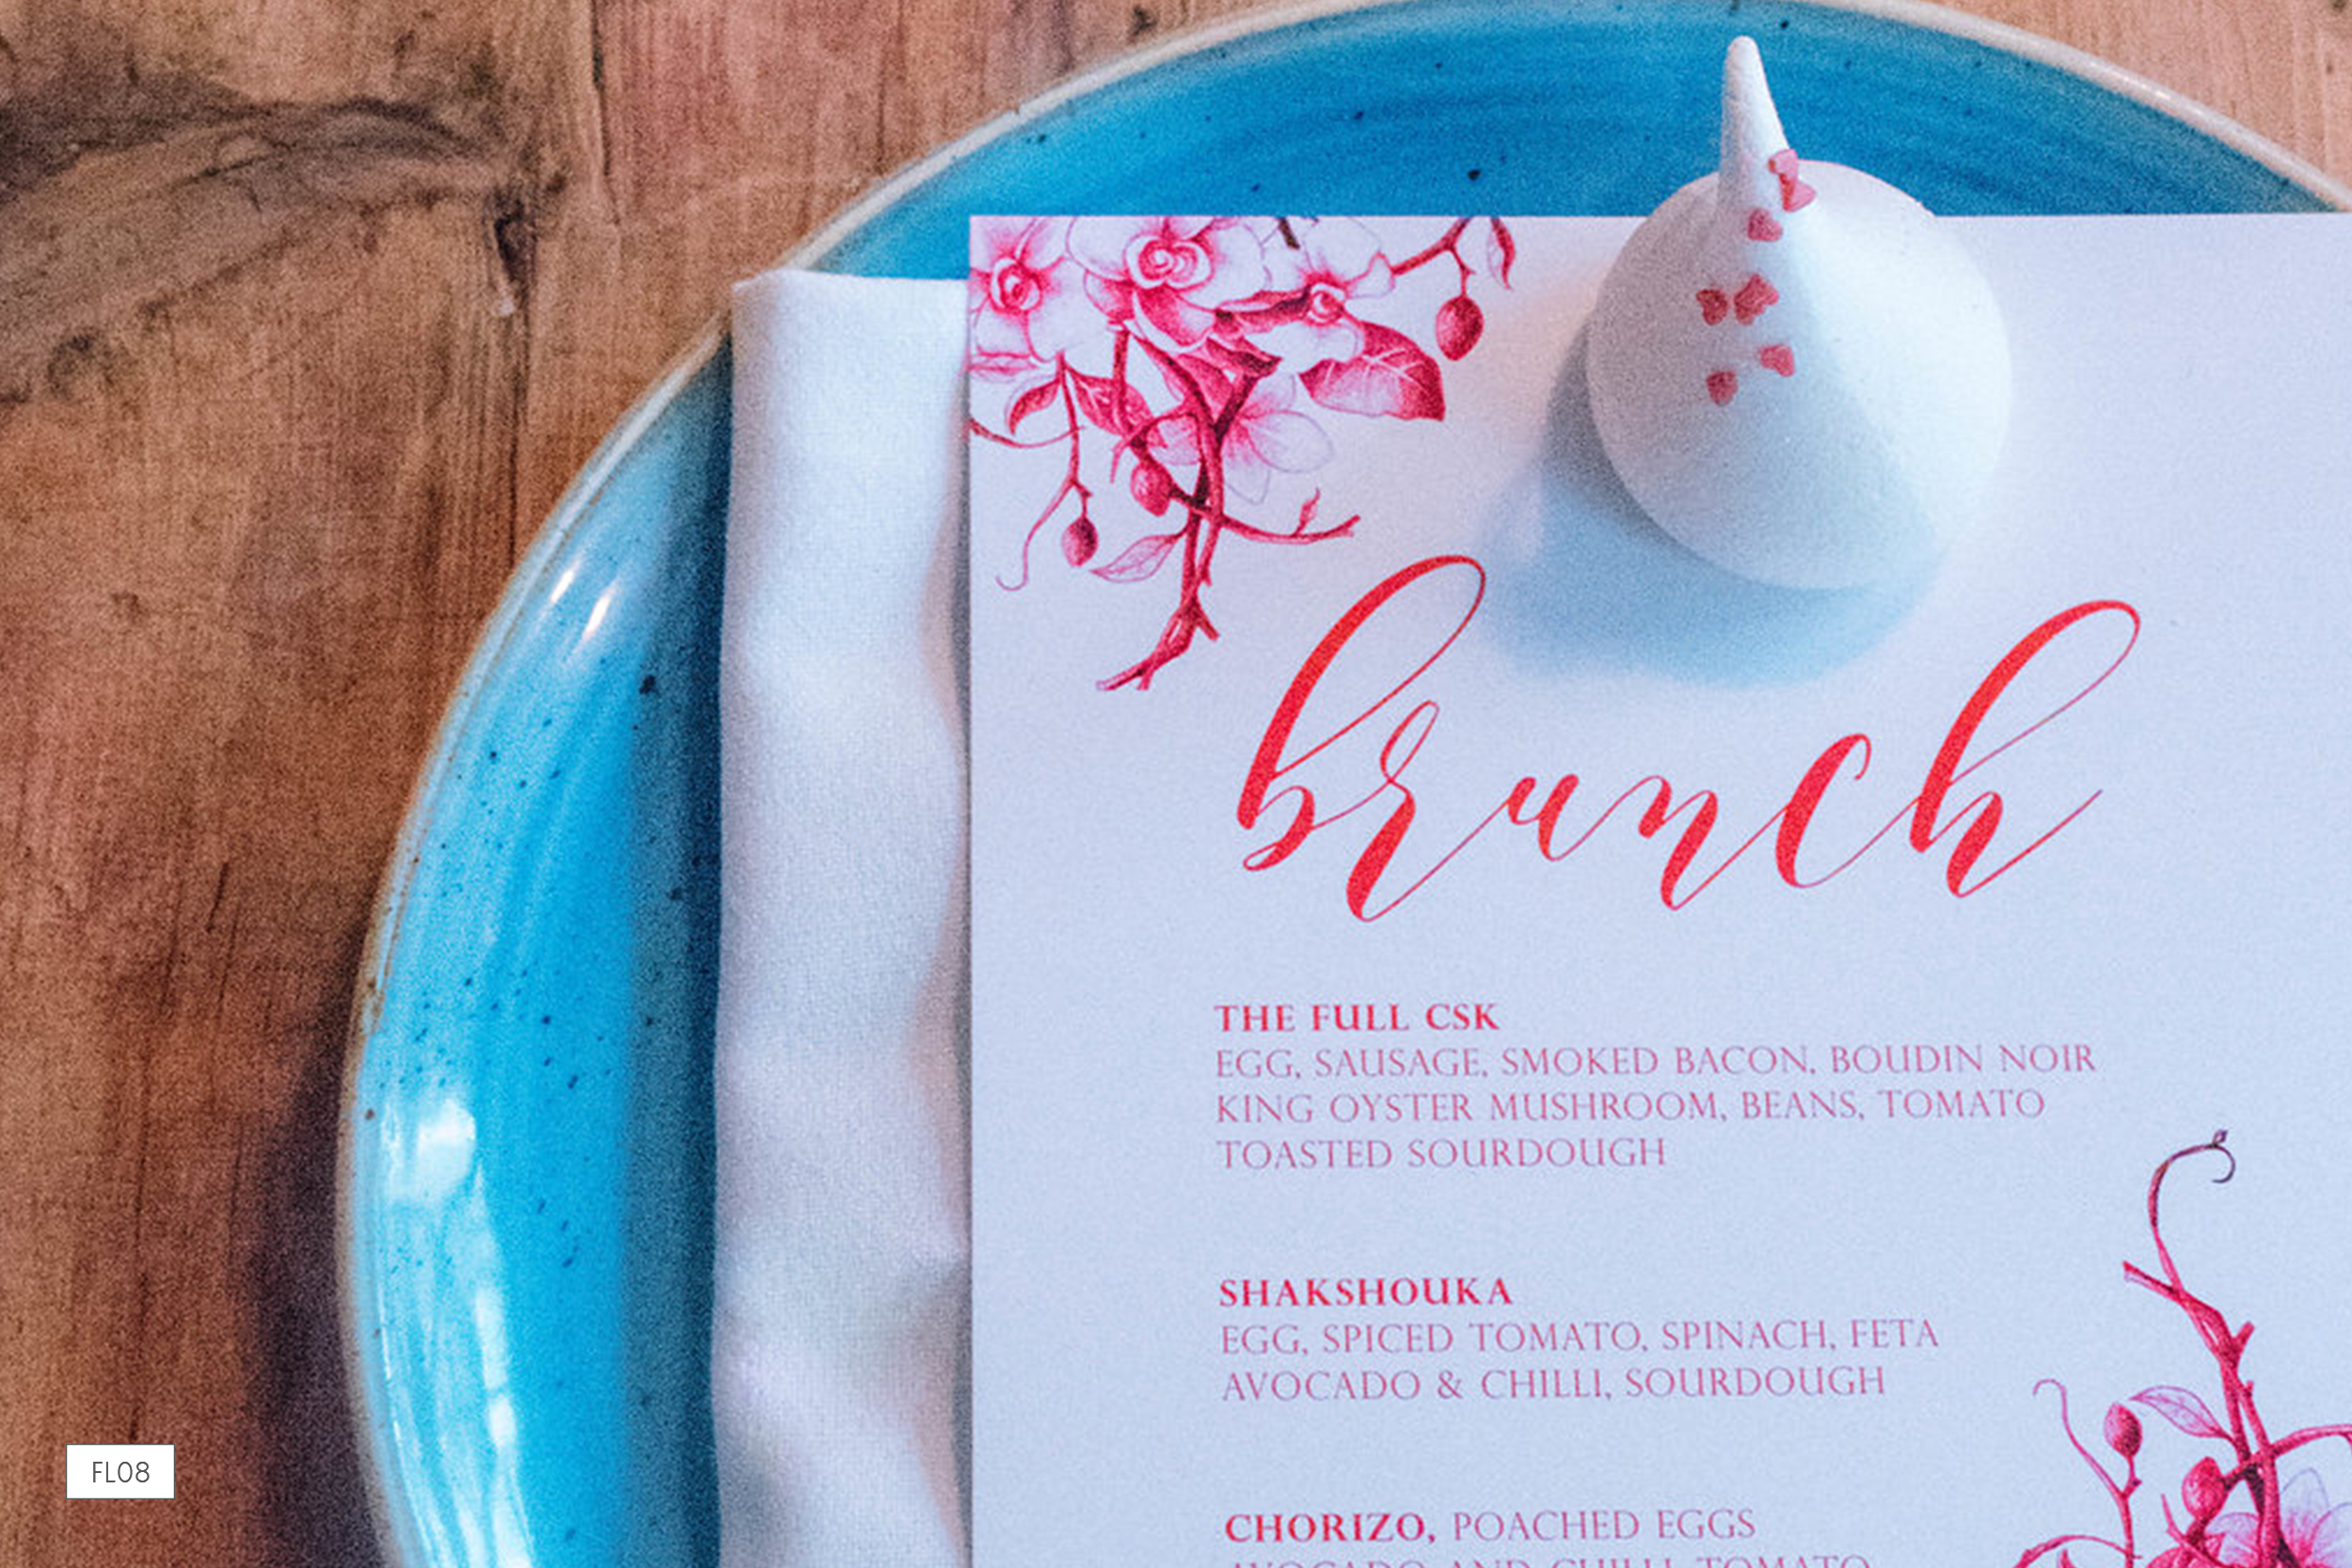 fl08-brunch-menu-invitation.jpg